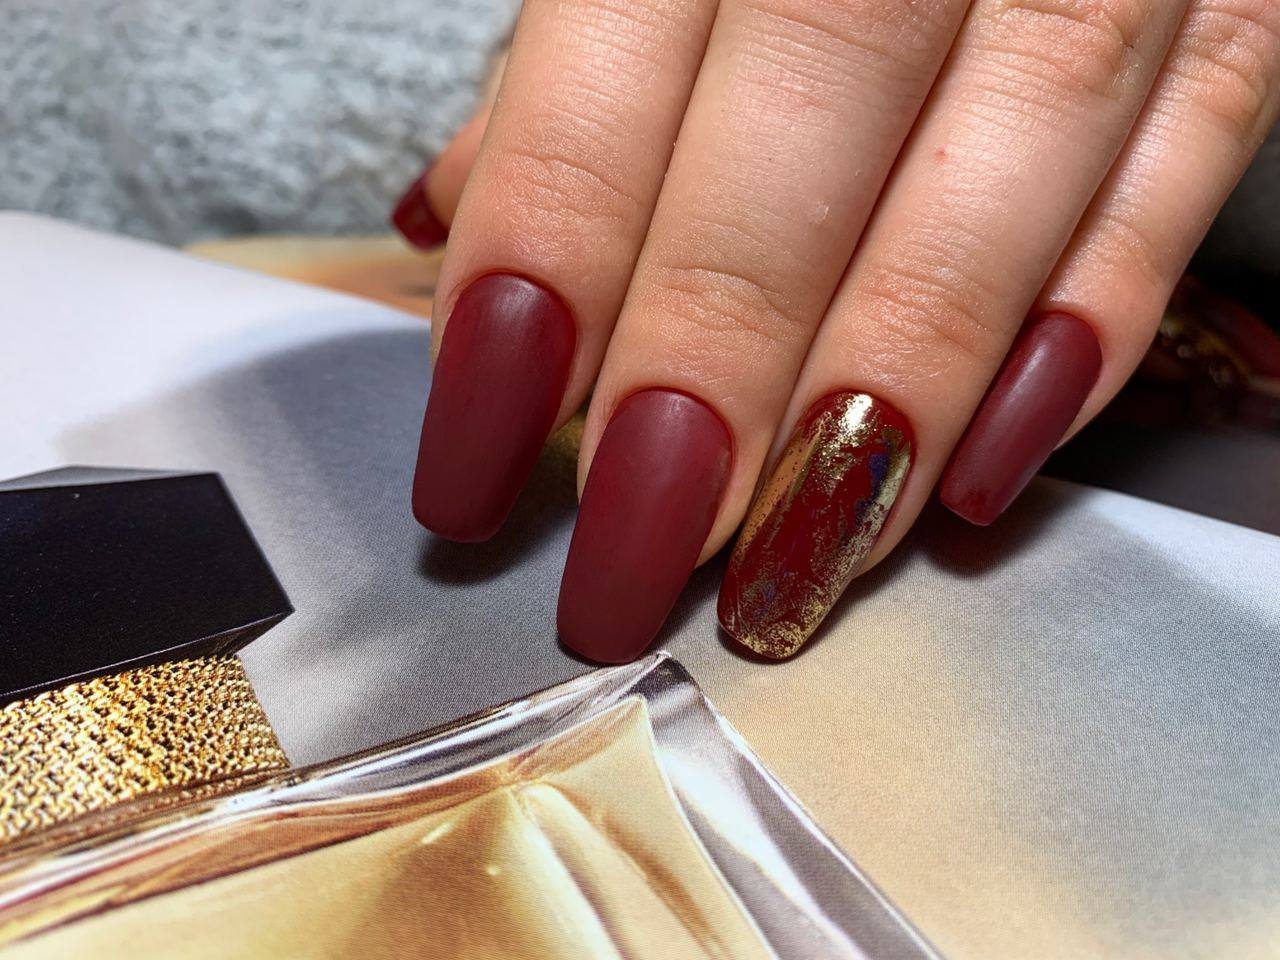 Long Burgundy Nails at The Best Nails and Designs